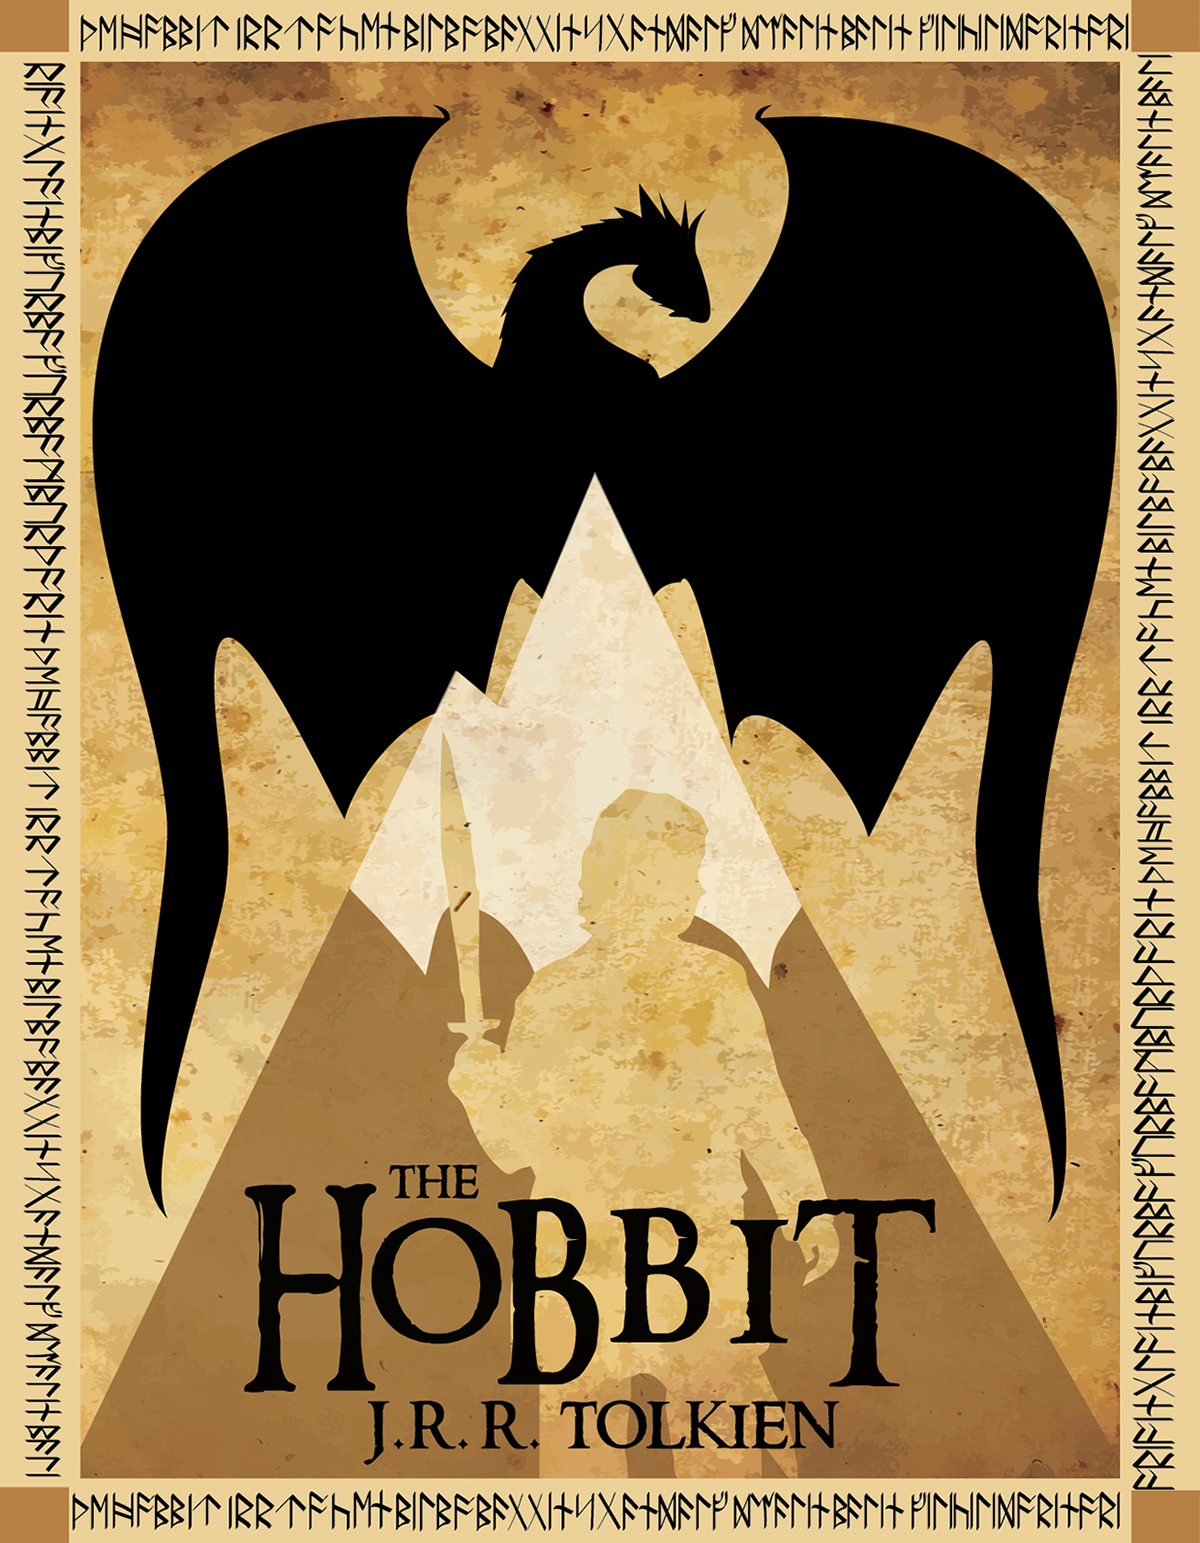 an analysis of the characters of j r r tolkiens the hobbit The hobbit by j r r tolkien l summary & study guide by bookrags the hobbit study guide consists of approx 57 pages of summaries and analysis on the hobbit by jrr tolkien this study guide includes the following sections: plot summary, chapter summaries & analysis, characters, objects/places, themes, style, quotes, and topics for discussion.